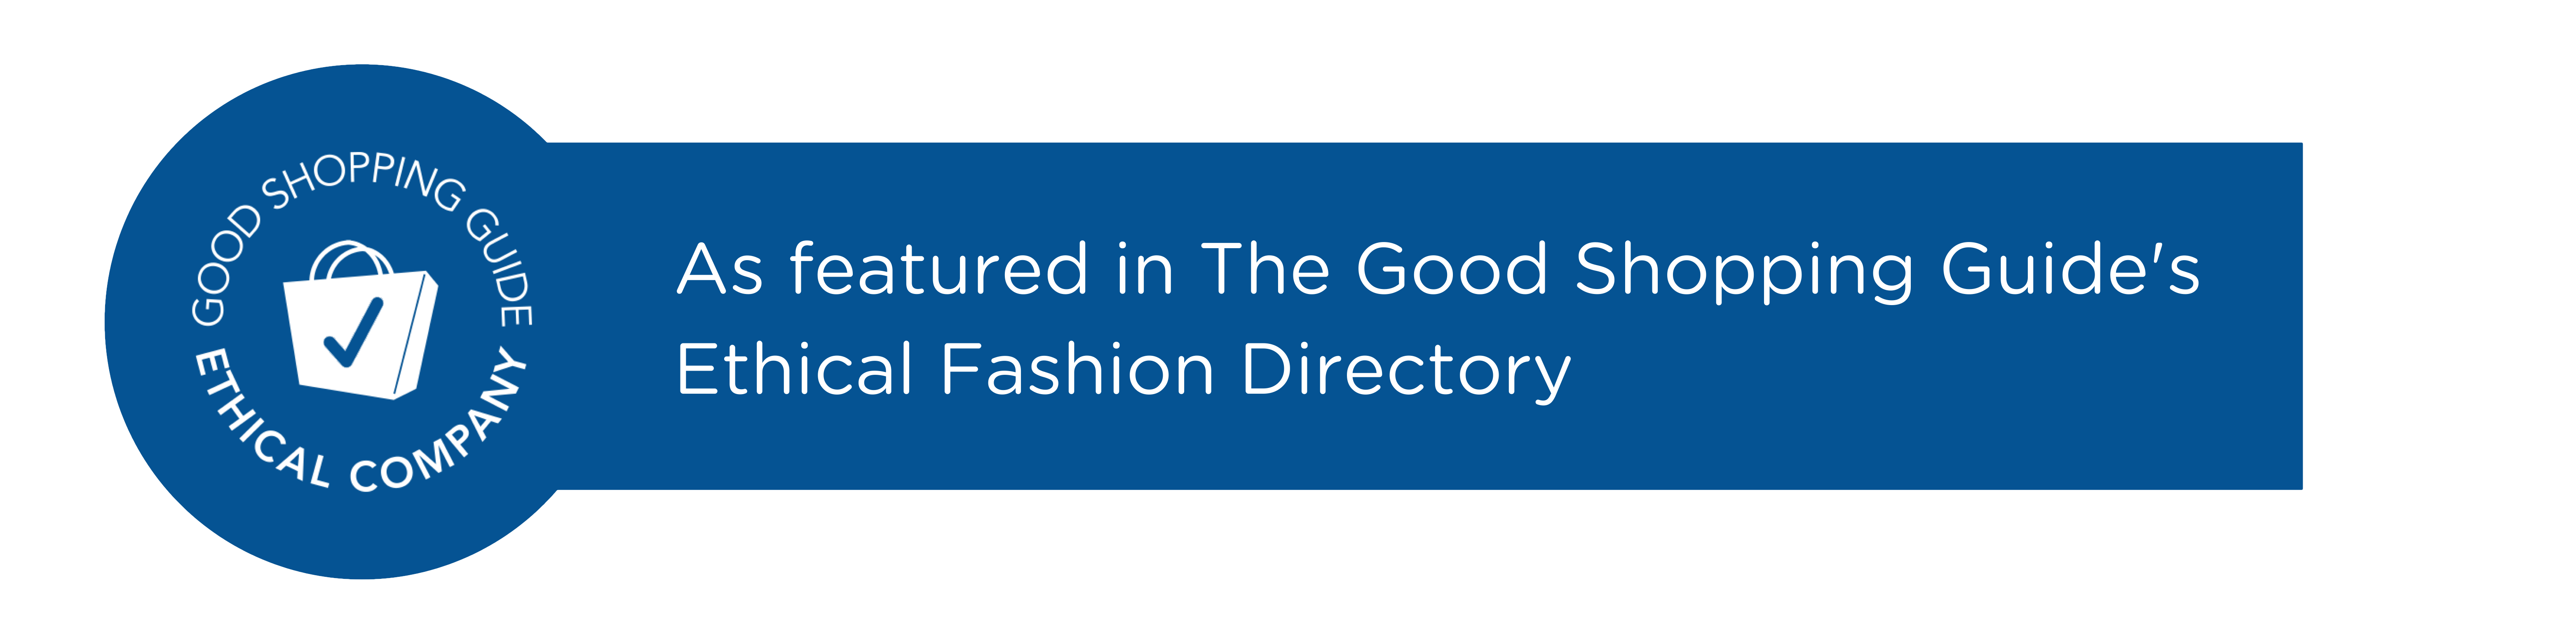 Ethical Fashion Directory